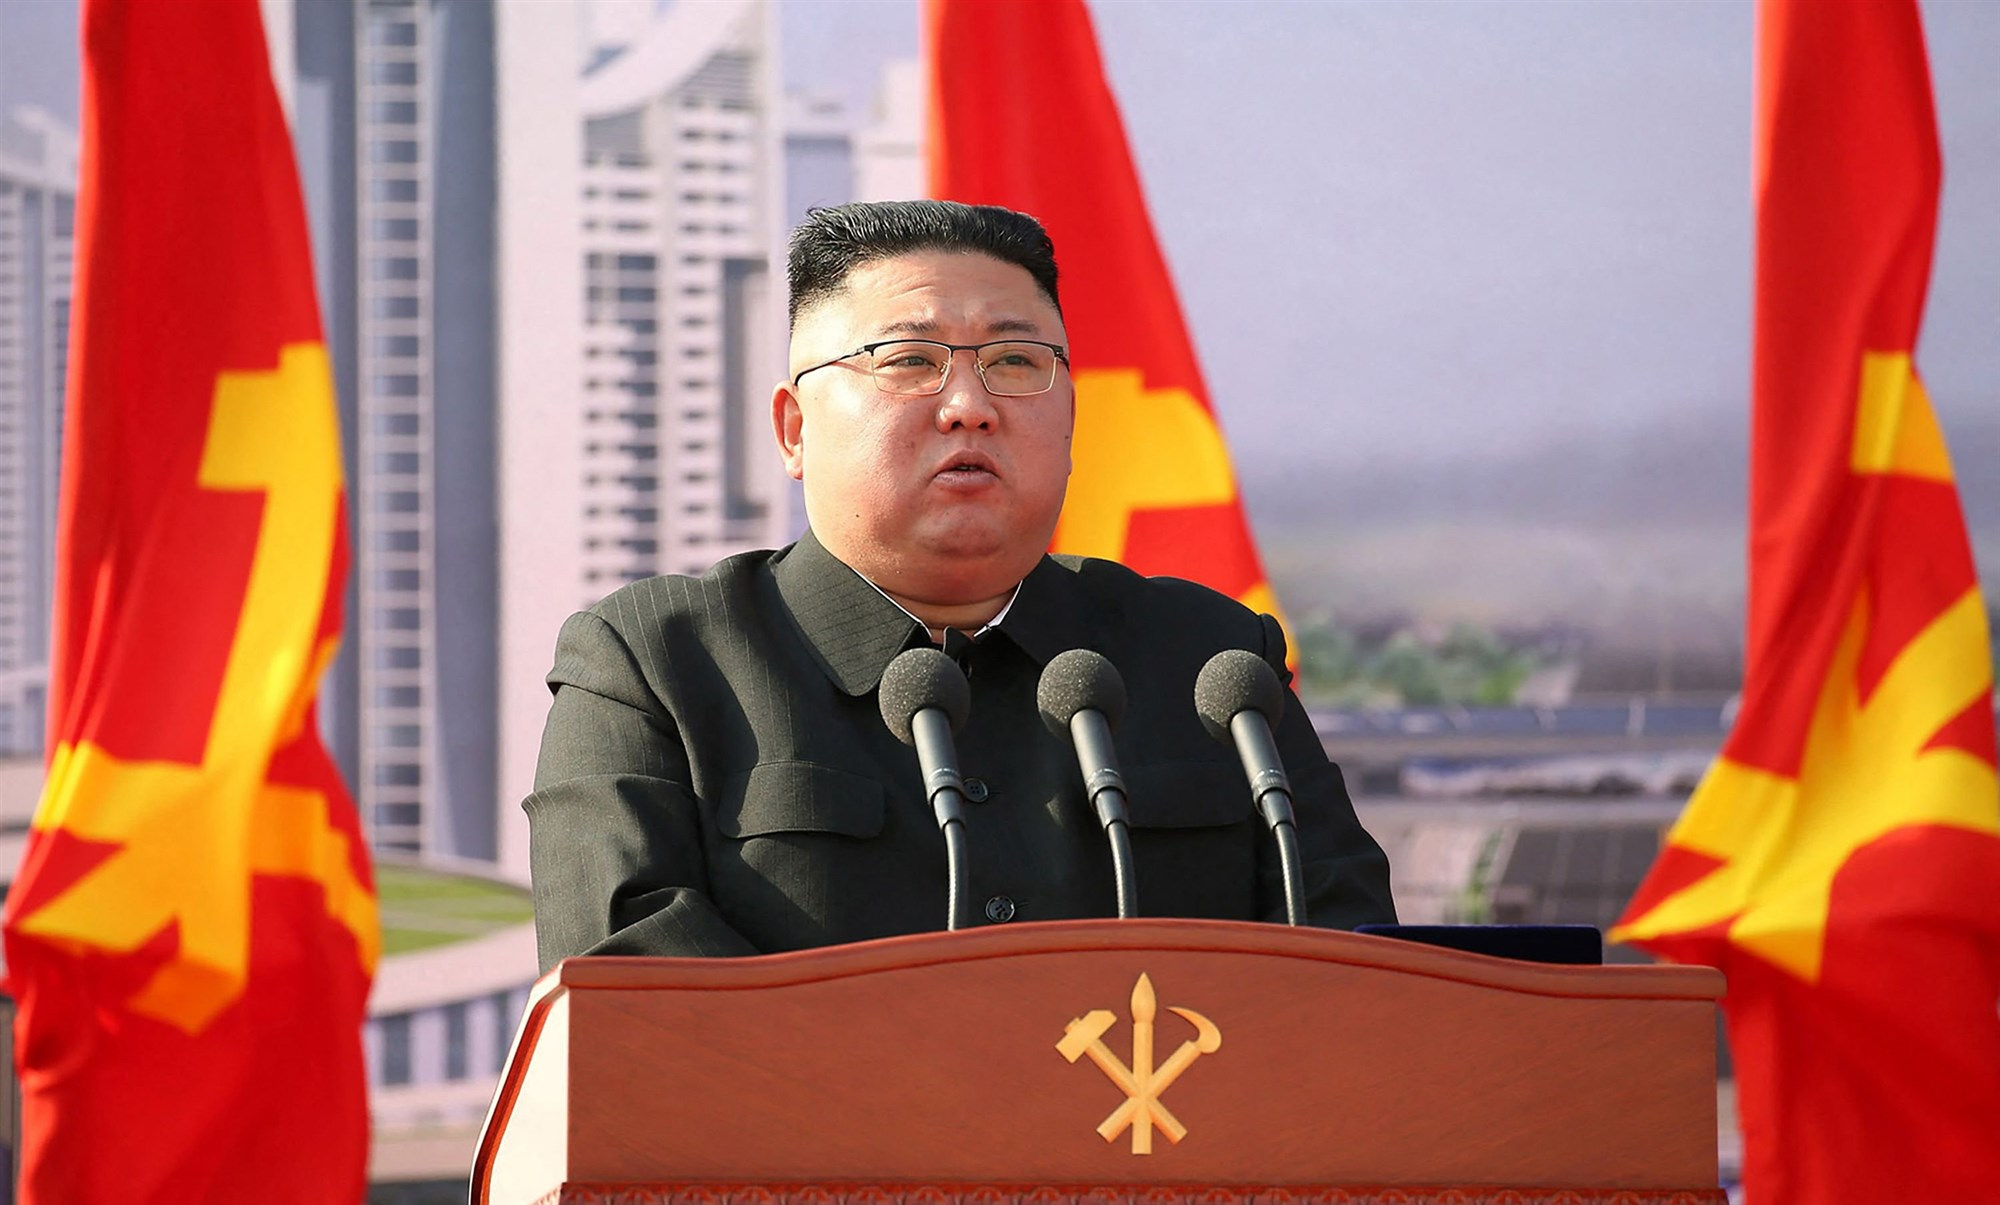 North Korea Launched Two Ballistic Missiles, U.S., Japanese Officials Say